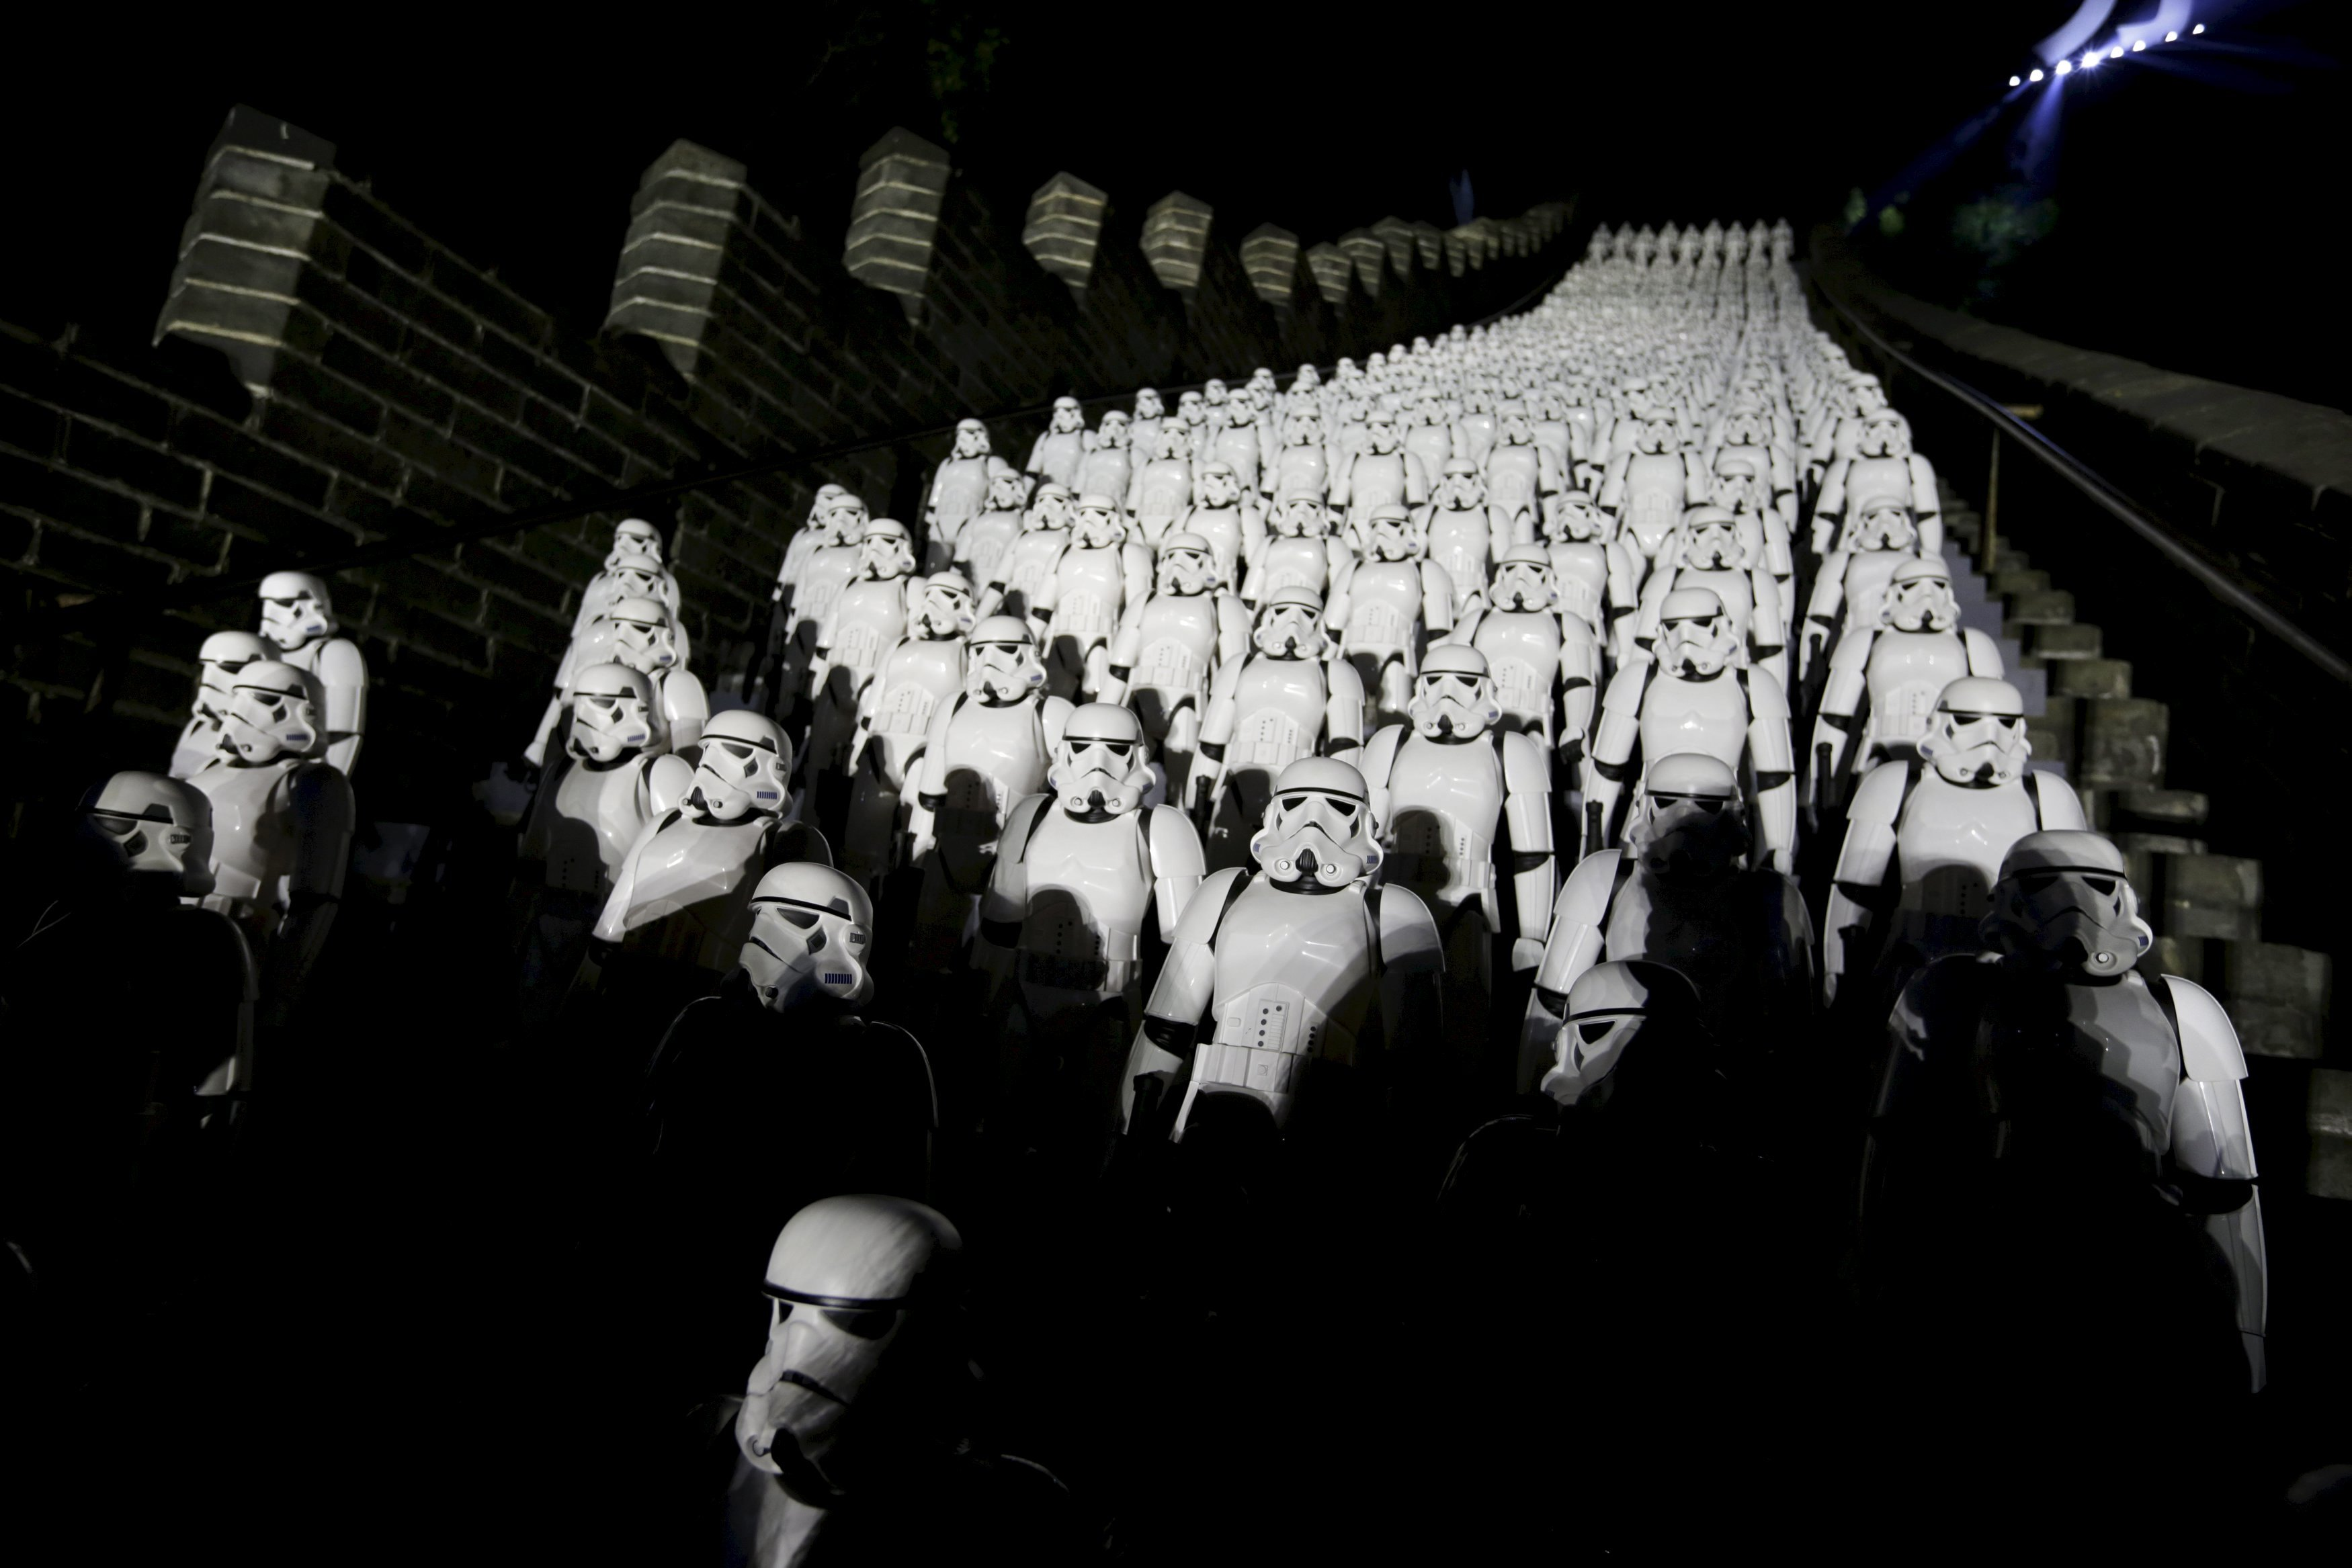 """Five hundred replicas of the Stormtroopers characters from """"Star Wars"""" are seen on the steps at the Juyongguan section of the Great Wall of China during a promotional event for """"Star Wars: The Force Awakens"""" film, on the outskirts of Beijing, China, in this October 20, 2015 file photo. REUTERS/Jason Lee/Files"""